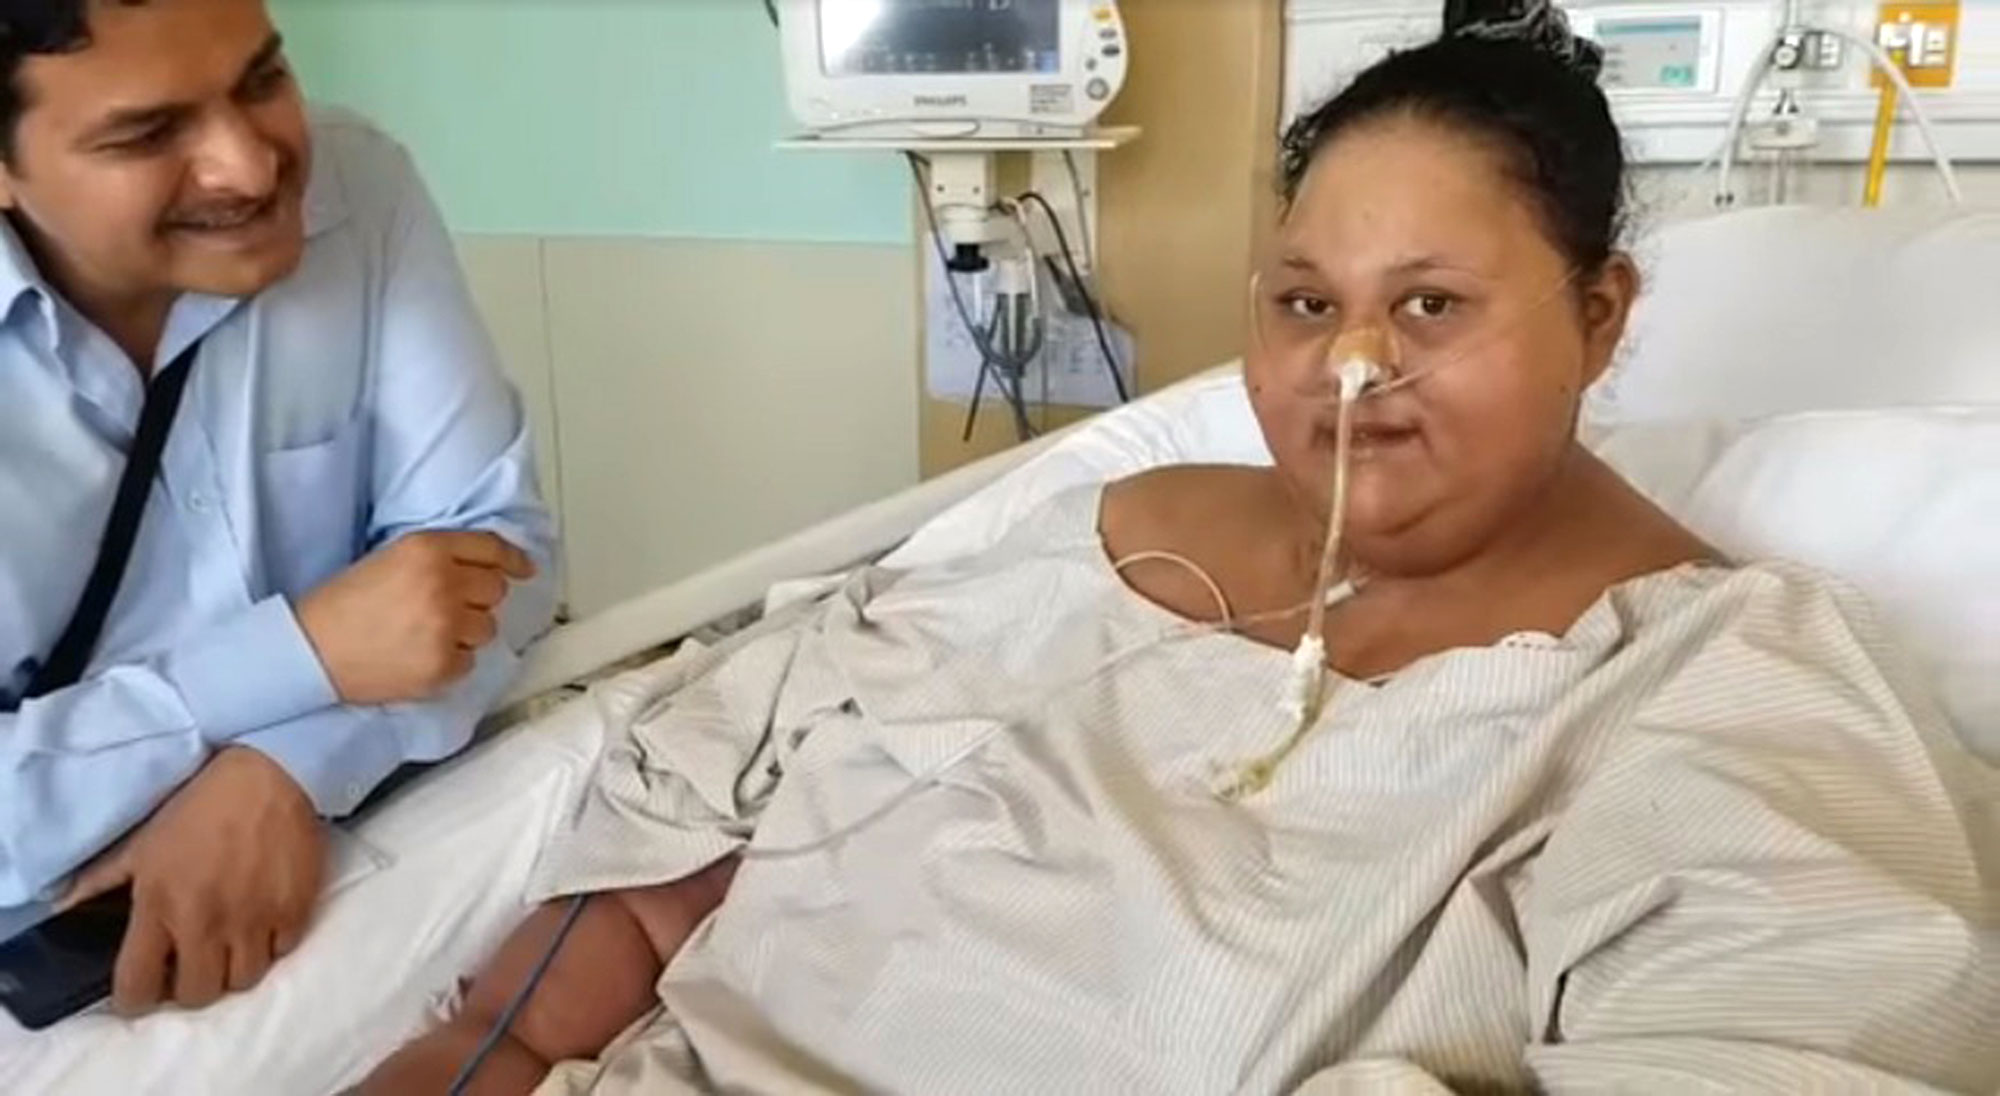 Woman Once Considered the World's Heaviest Dies After Losing More Than 700 Lbs.